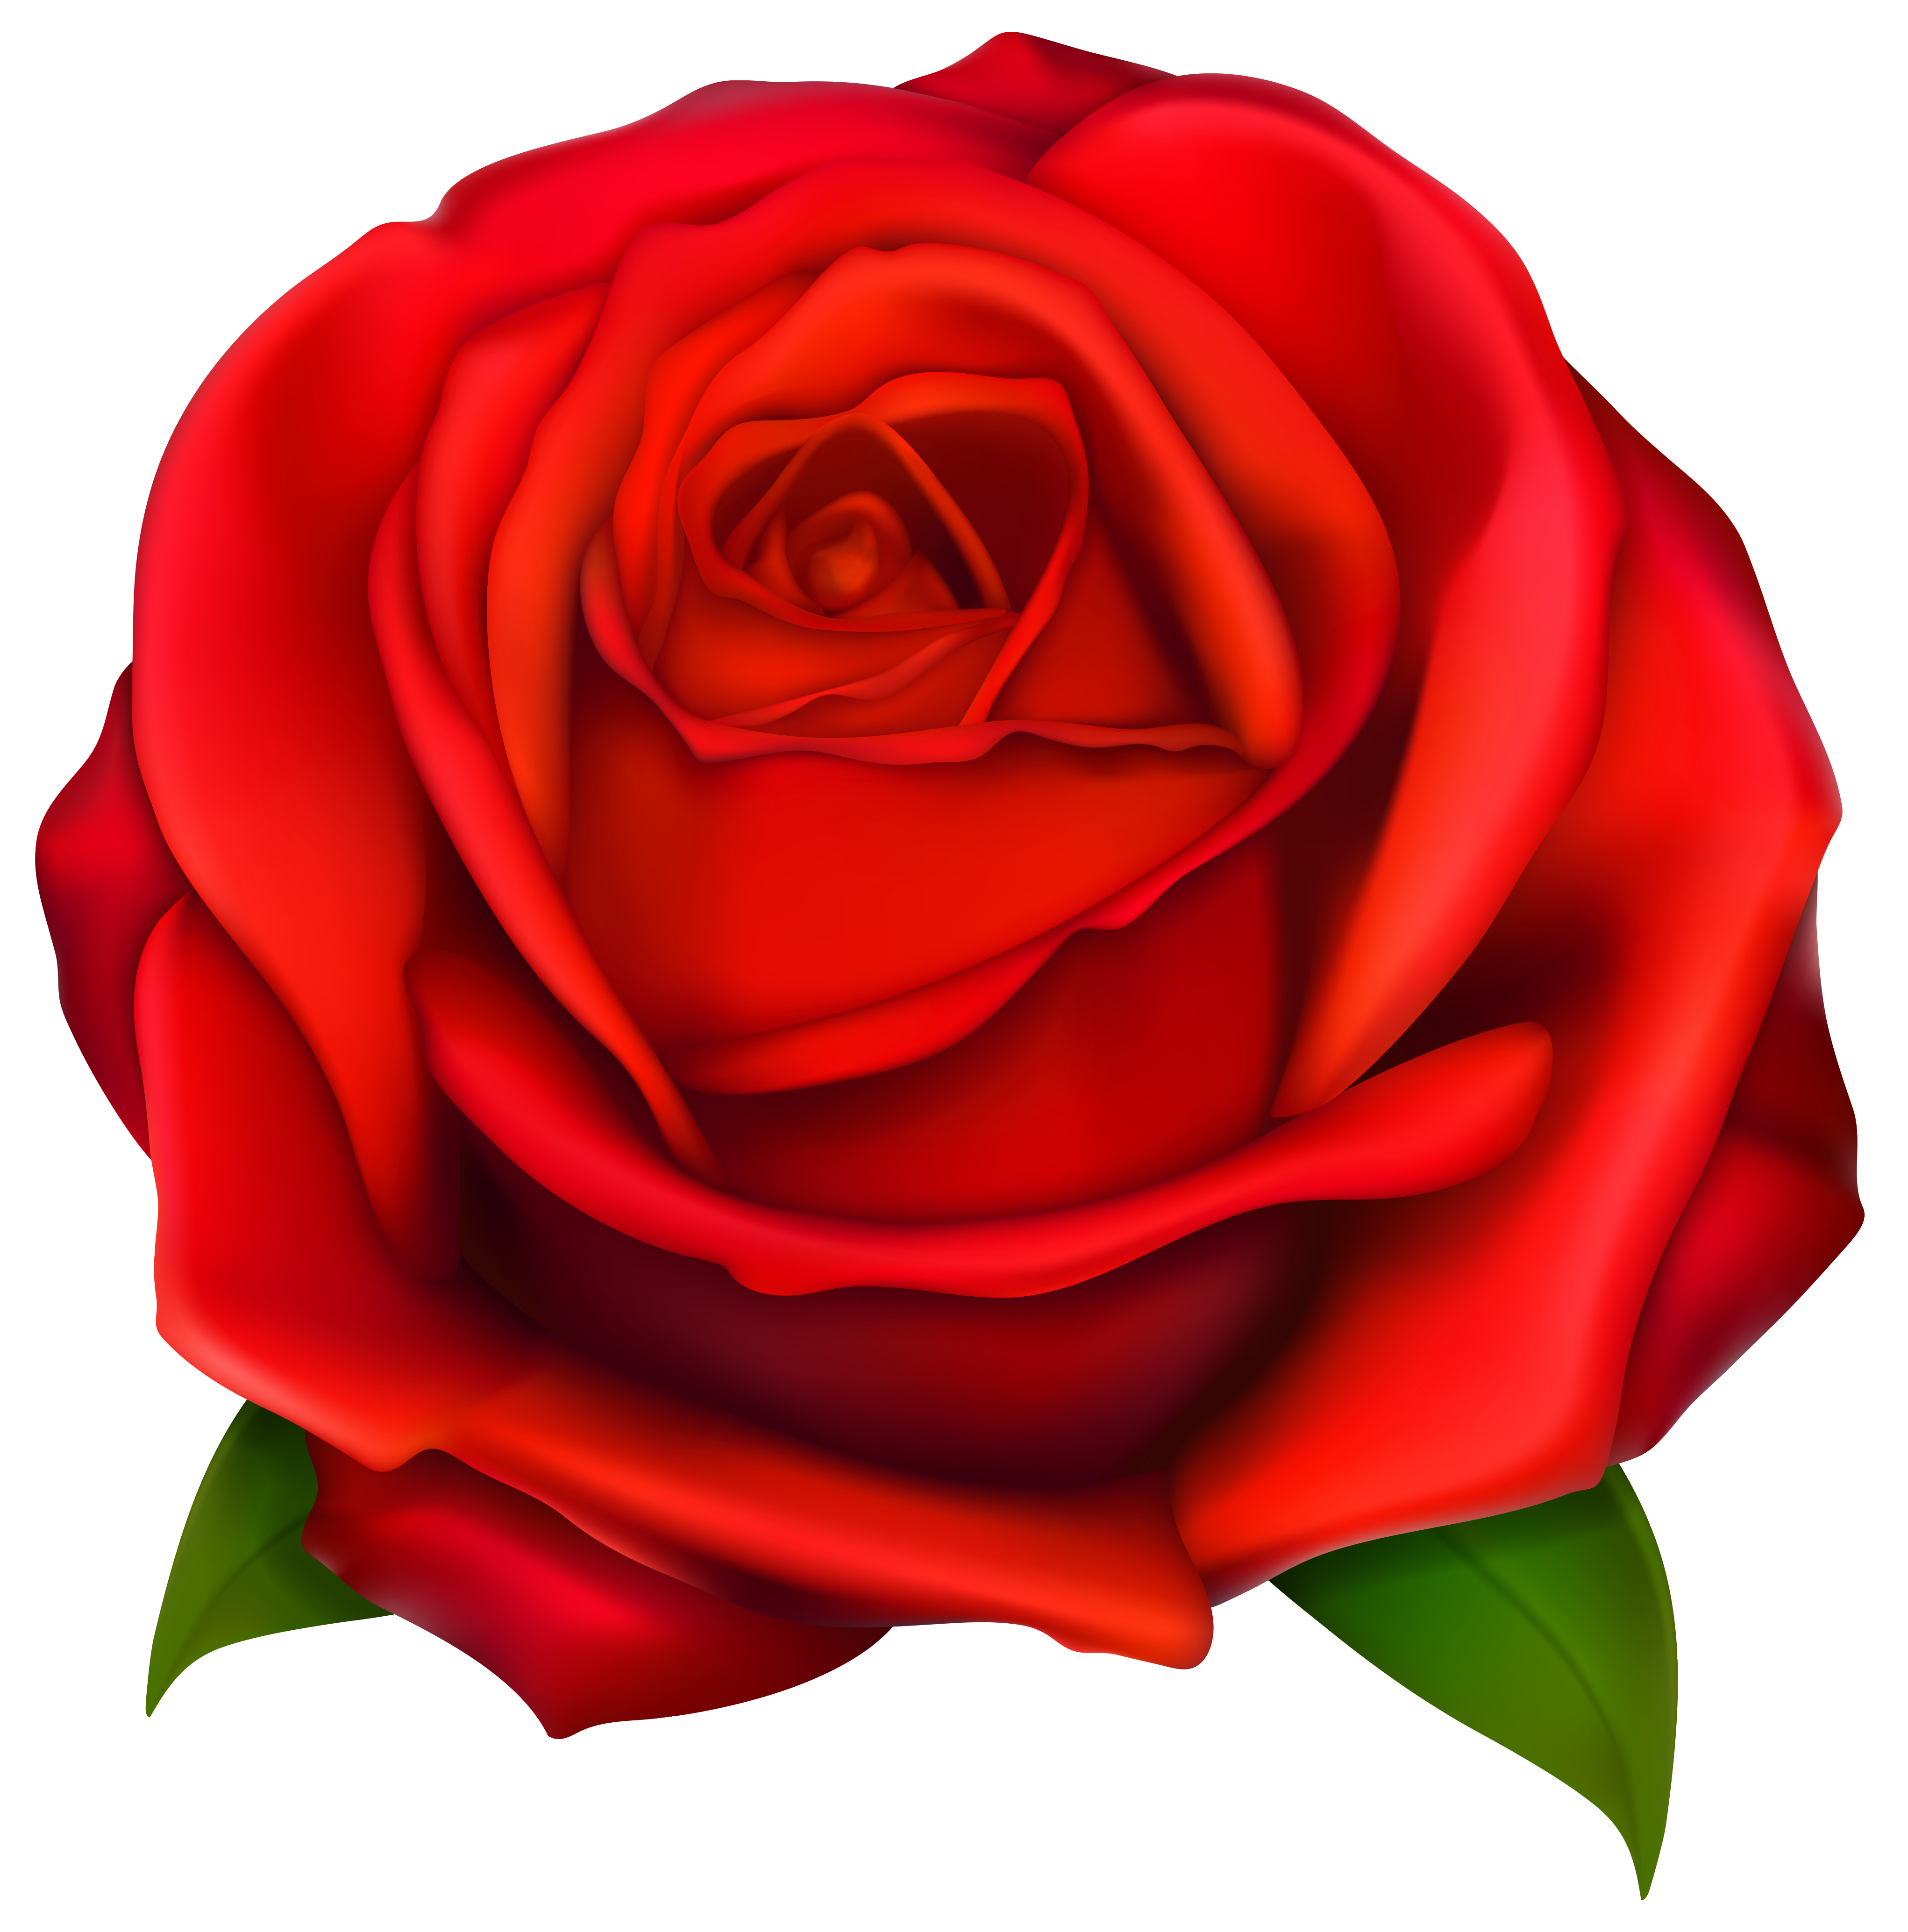 Image of clip art red rose 2 red roses clip art images free.